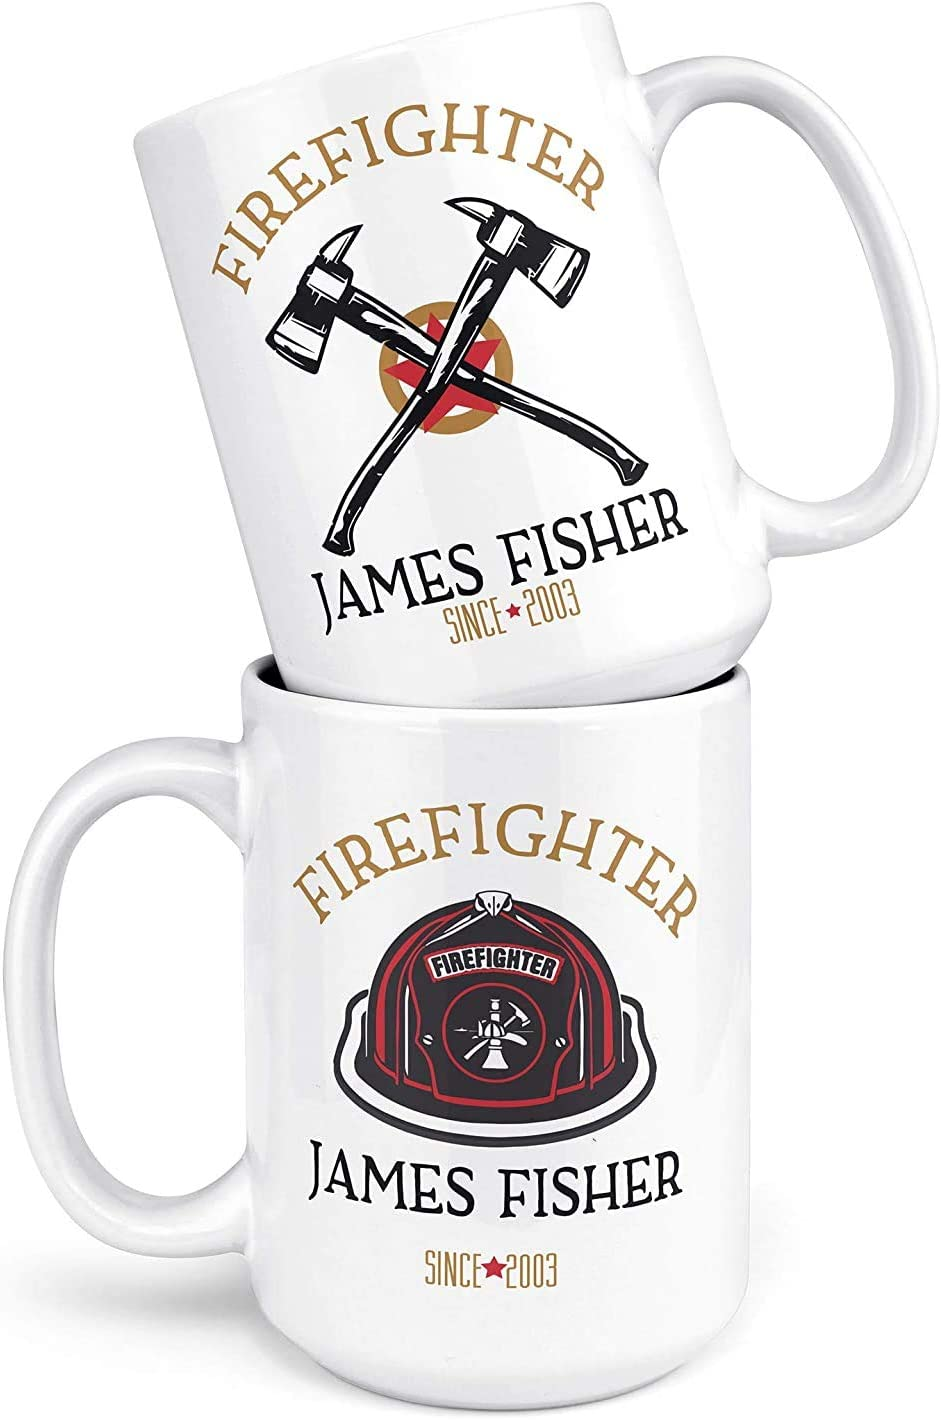 Perfect Firefighter Gift Cup Engine Man Firefighter Ceramic Coffee Mug